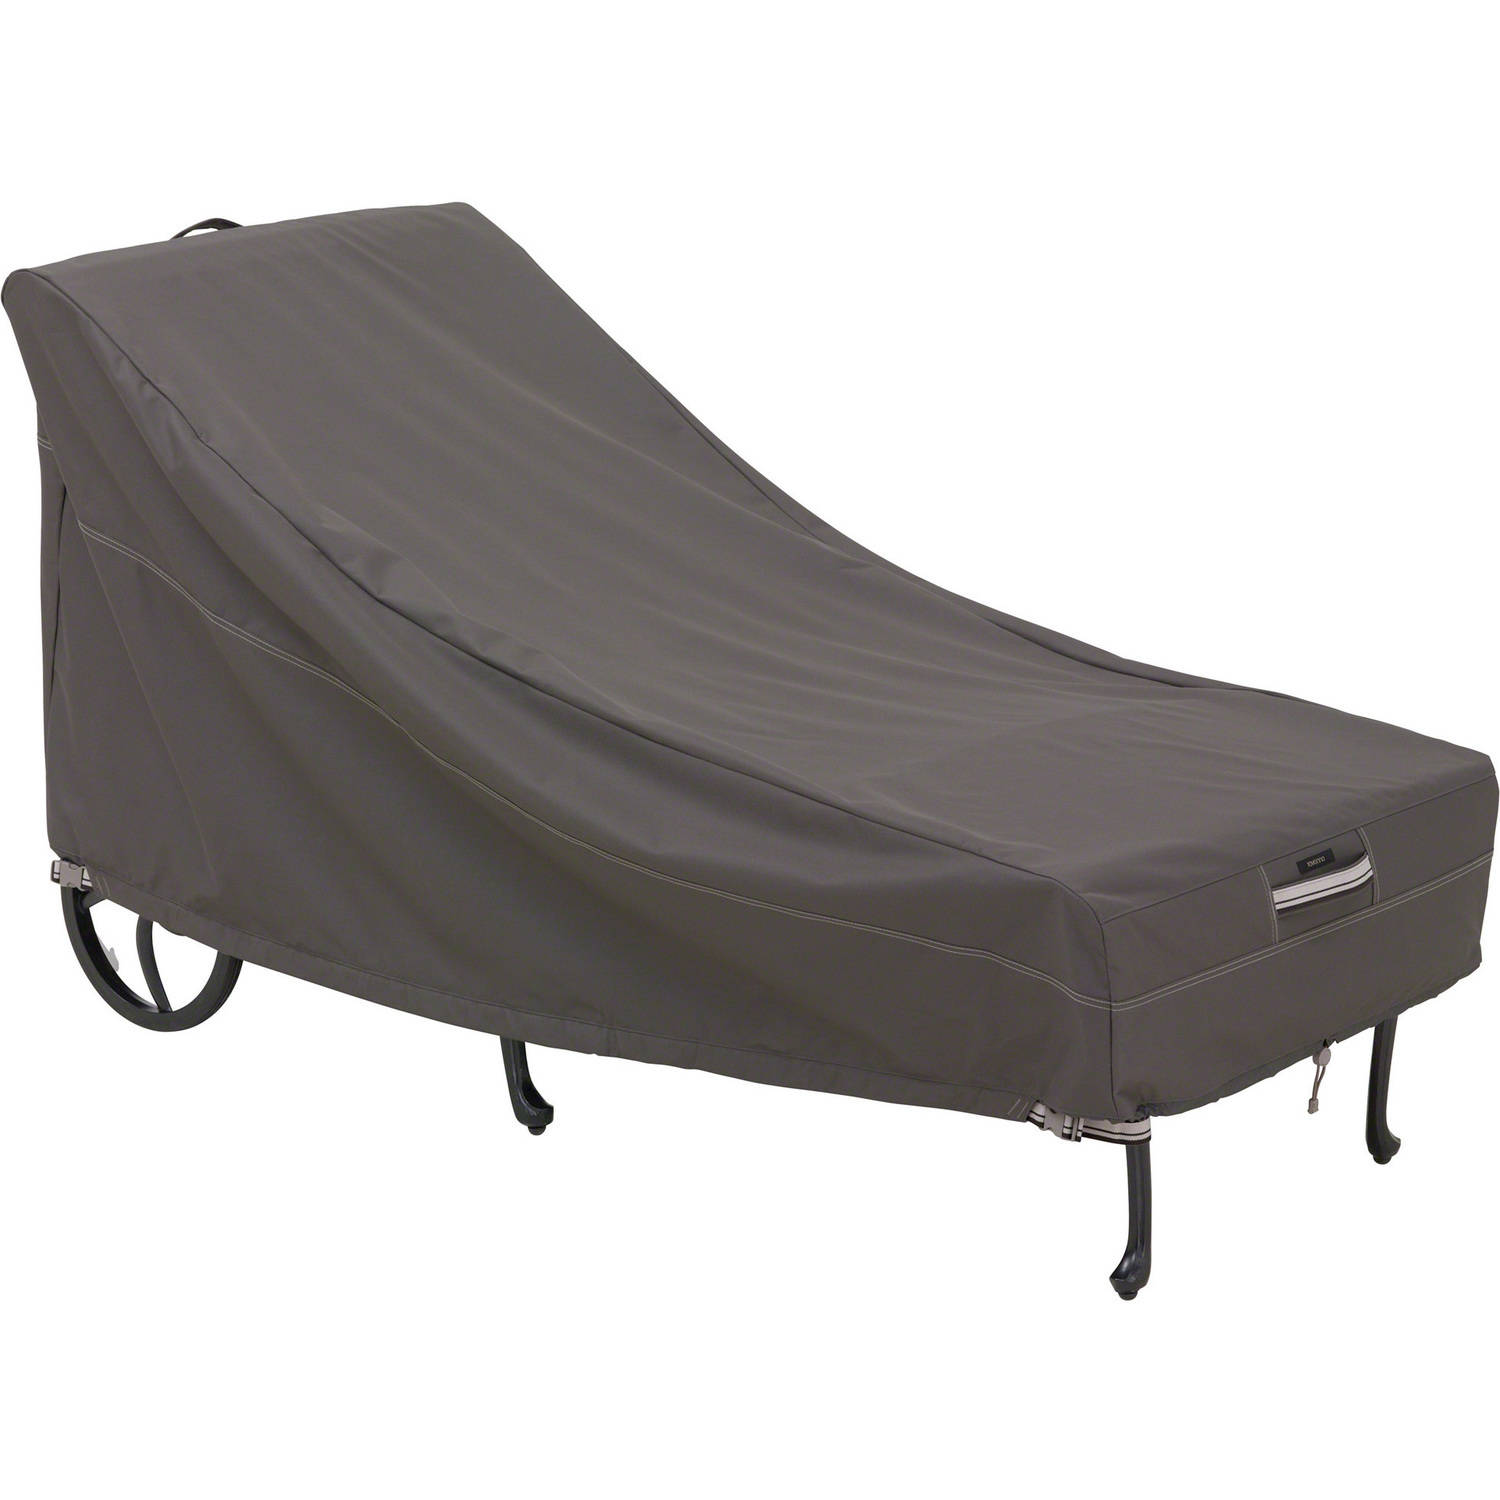 classic accessories ravenna patio chaise lounge cover